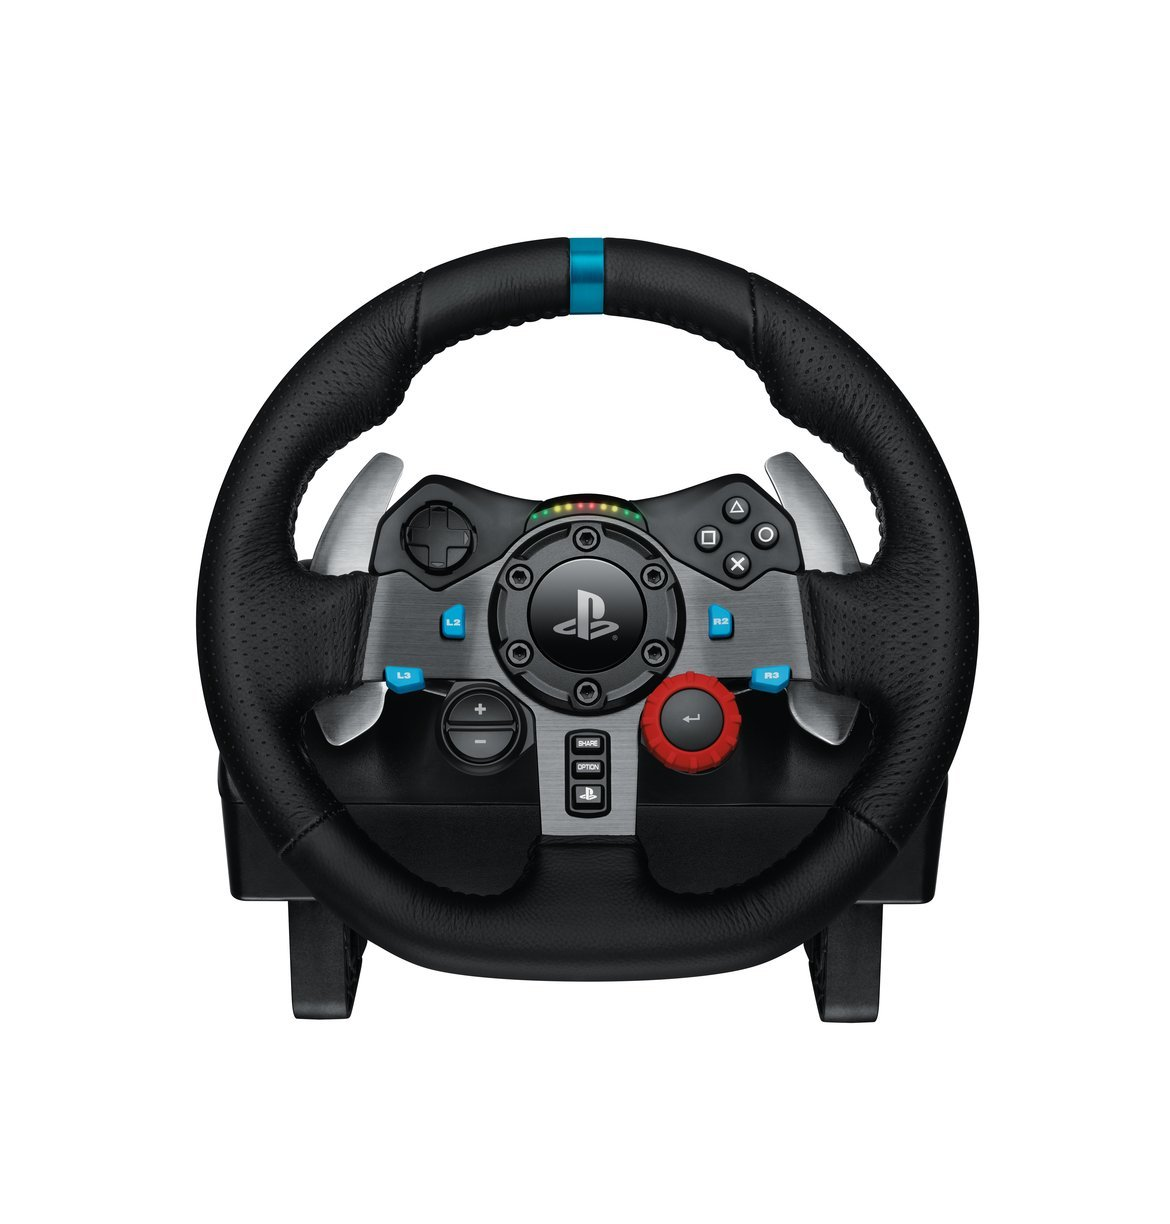 Logitech Racing Wheel amazon